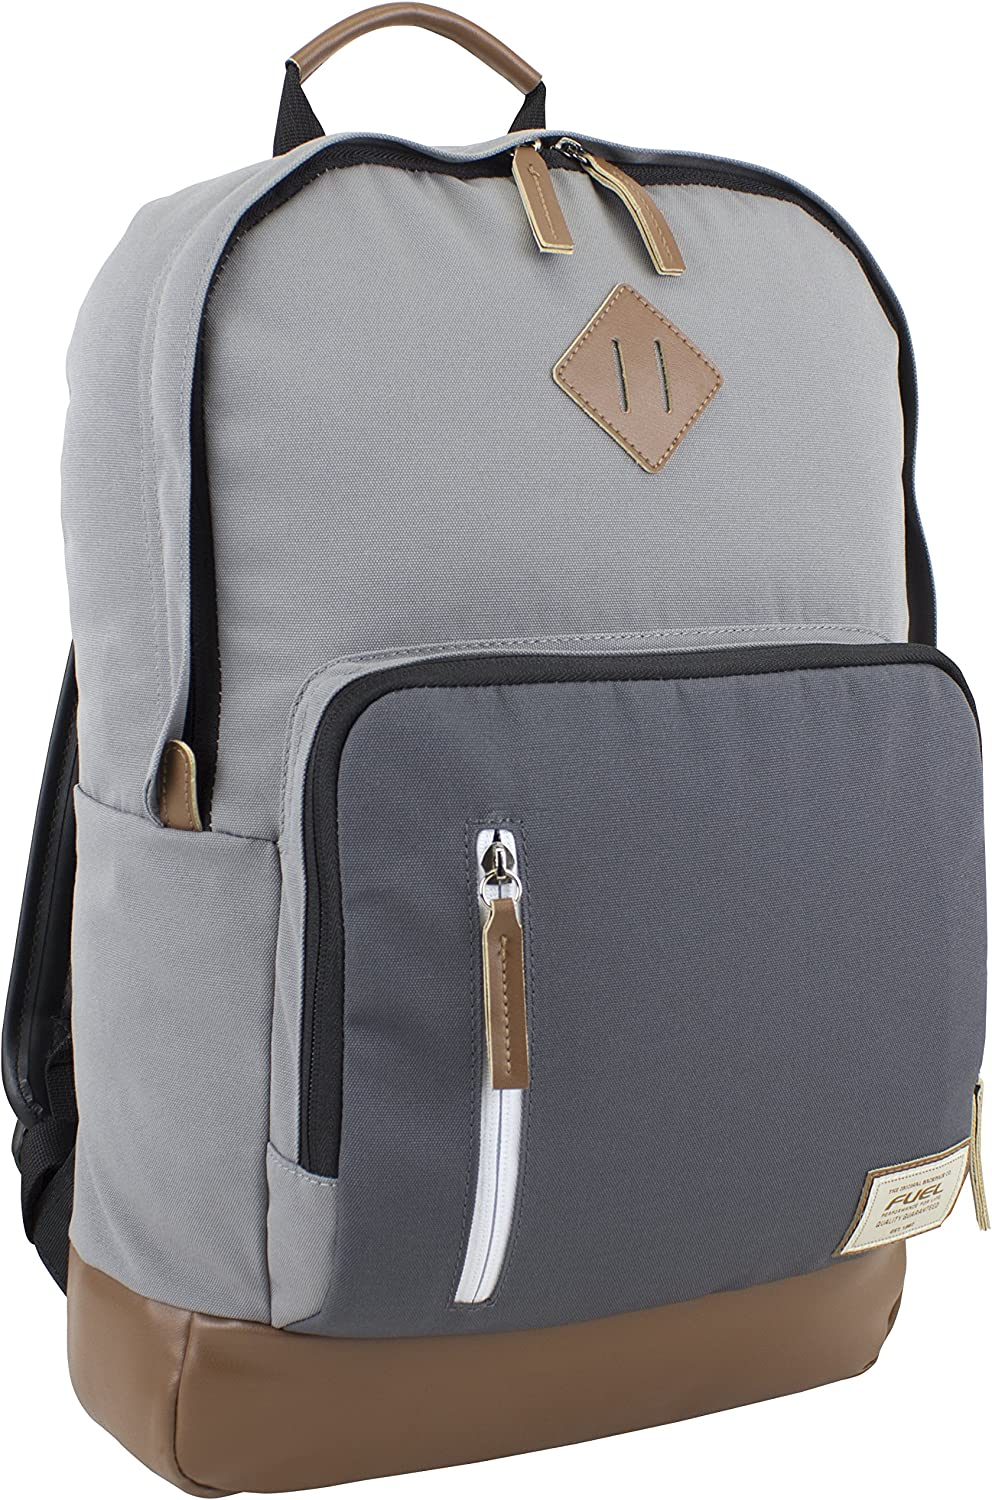 Fuel Everyday Multipurpose Backpack